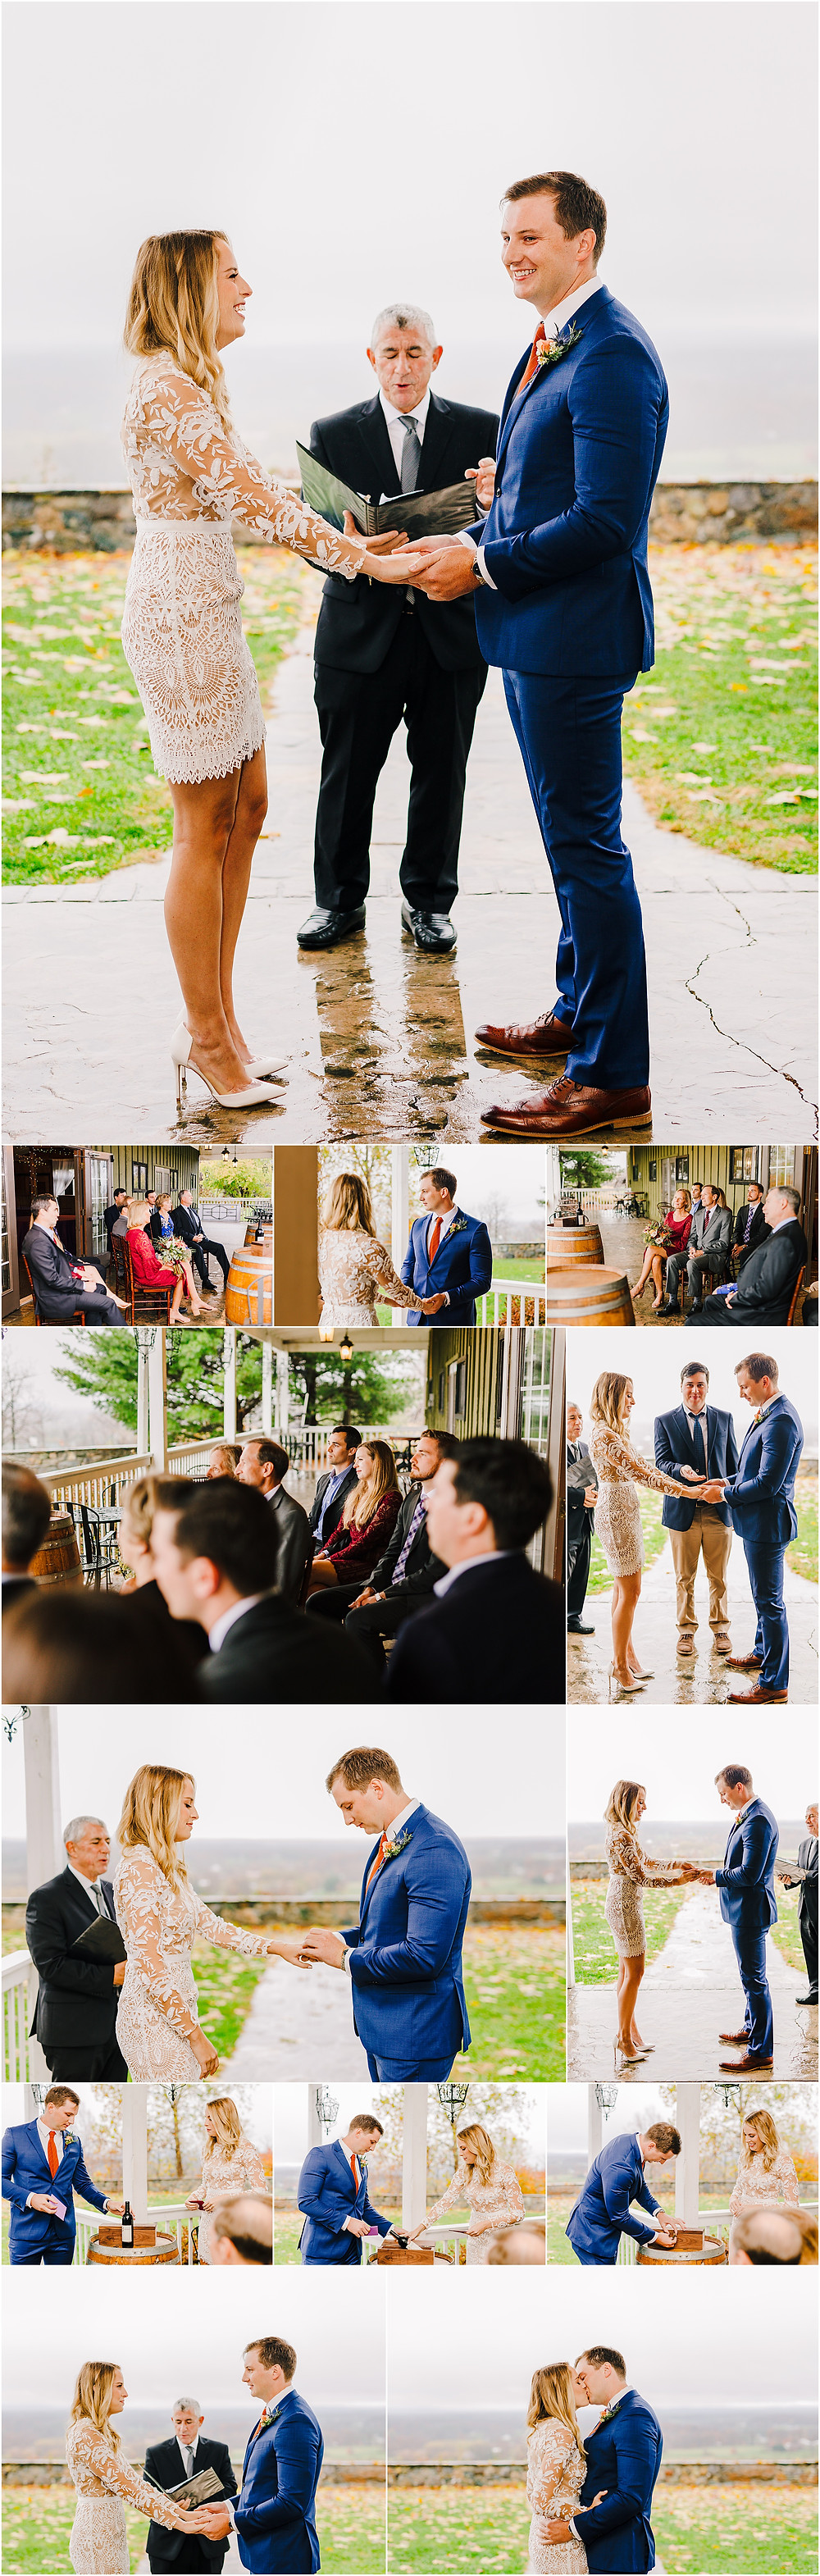 Maryland Elopement Photographer Fall Bluemont Vinyard Elopement Ceremony